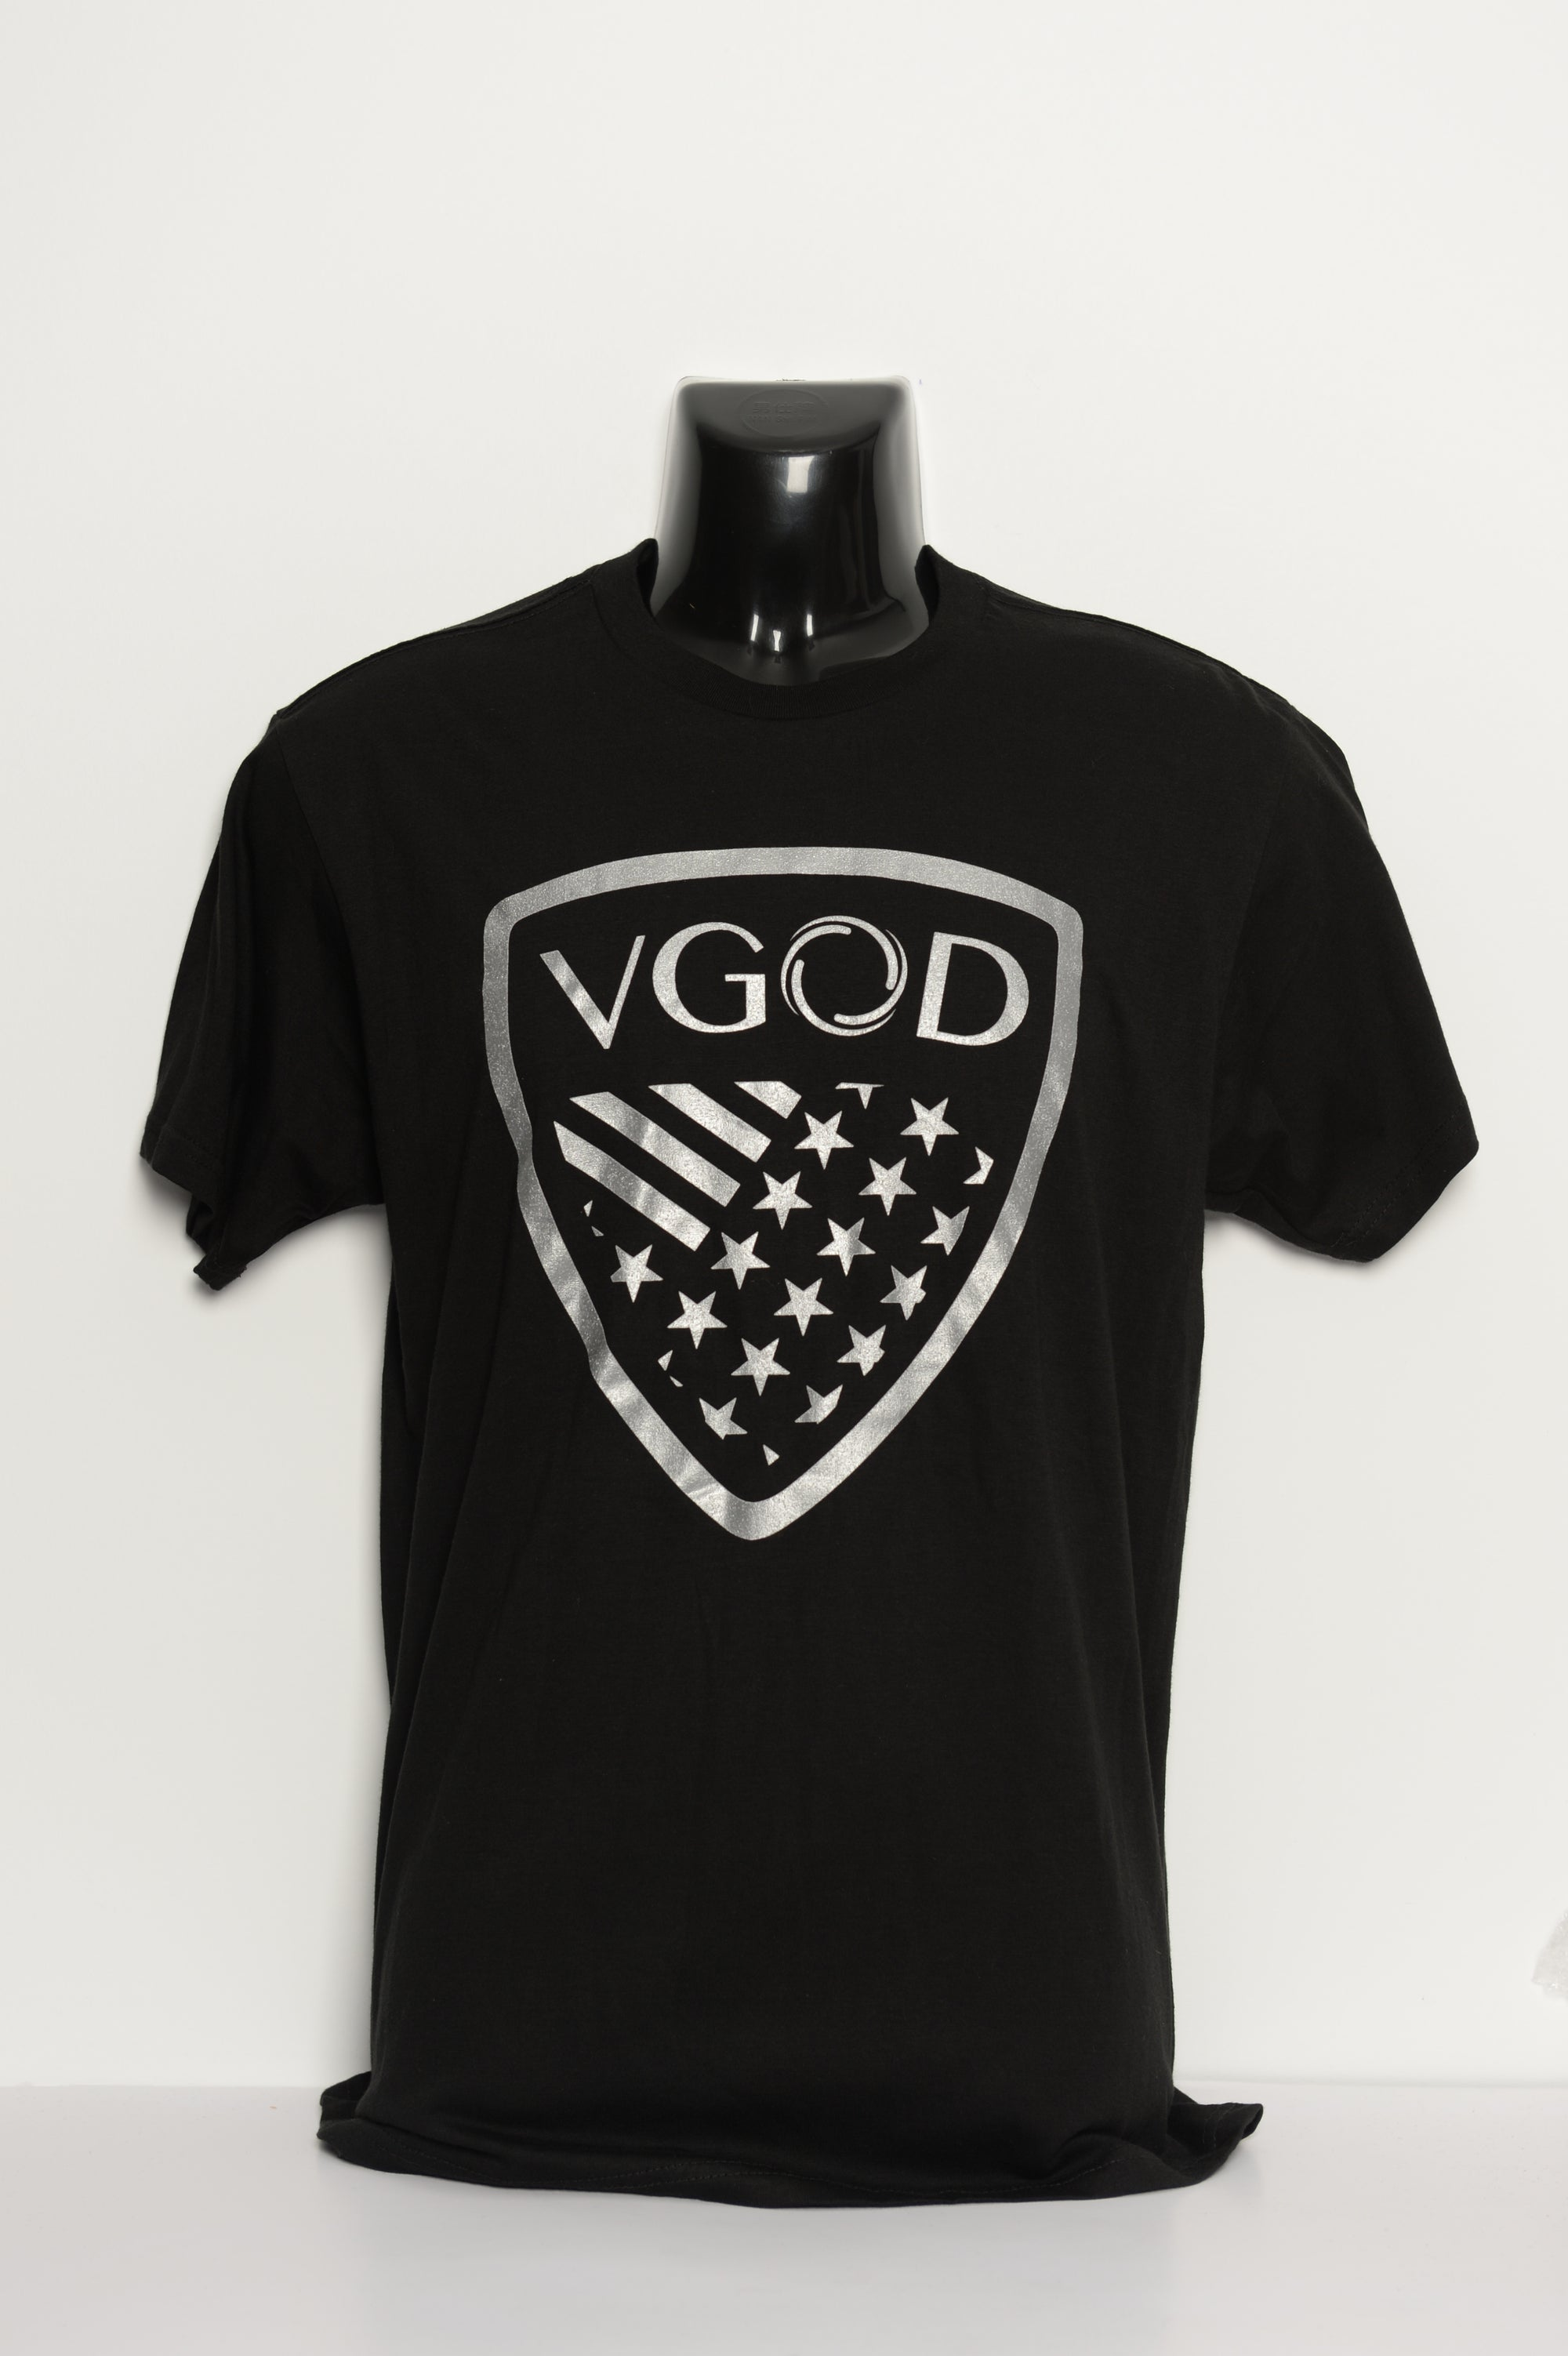 T-shirt • VGOD Shield